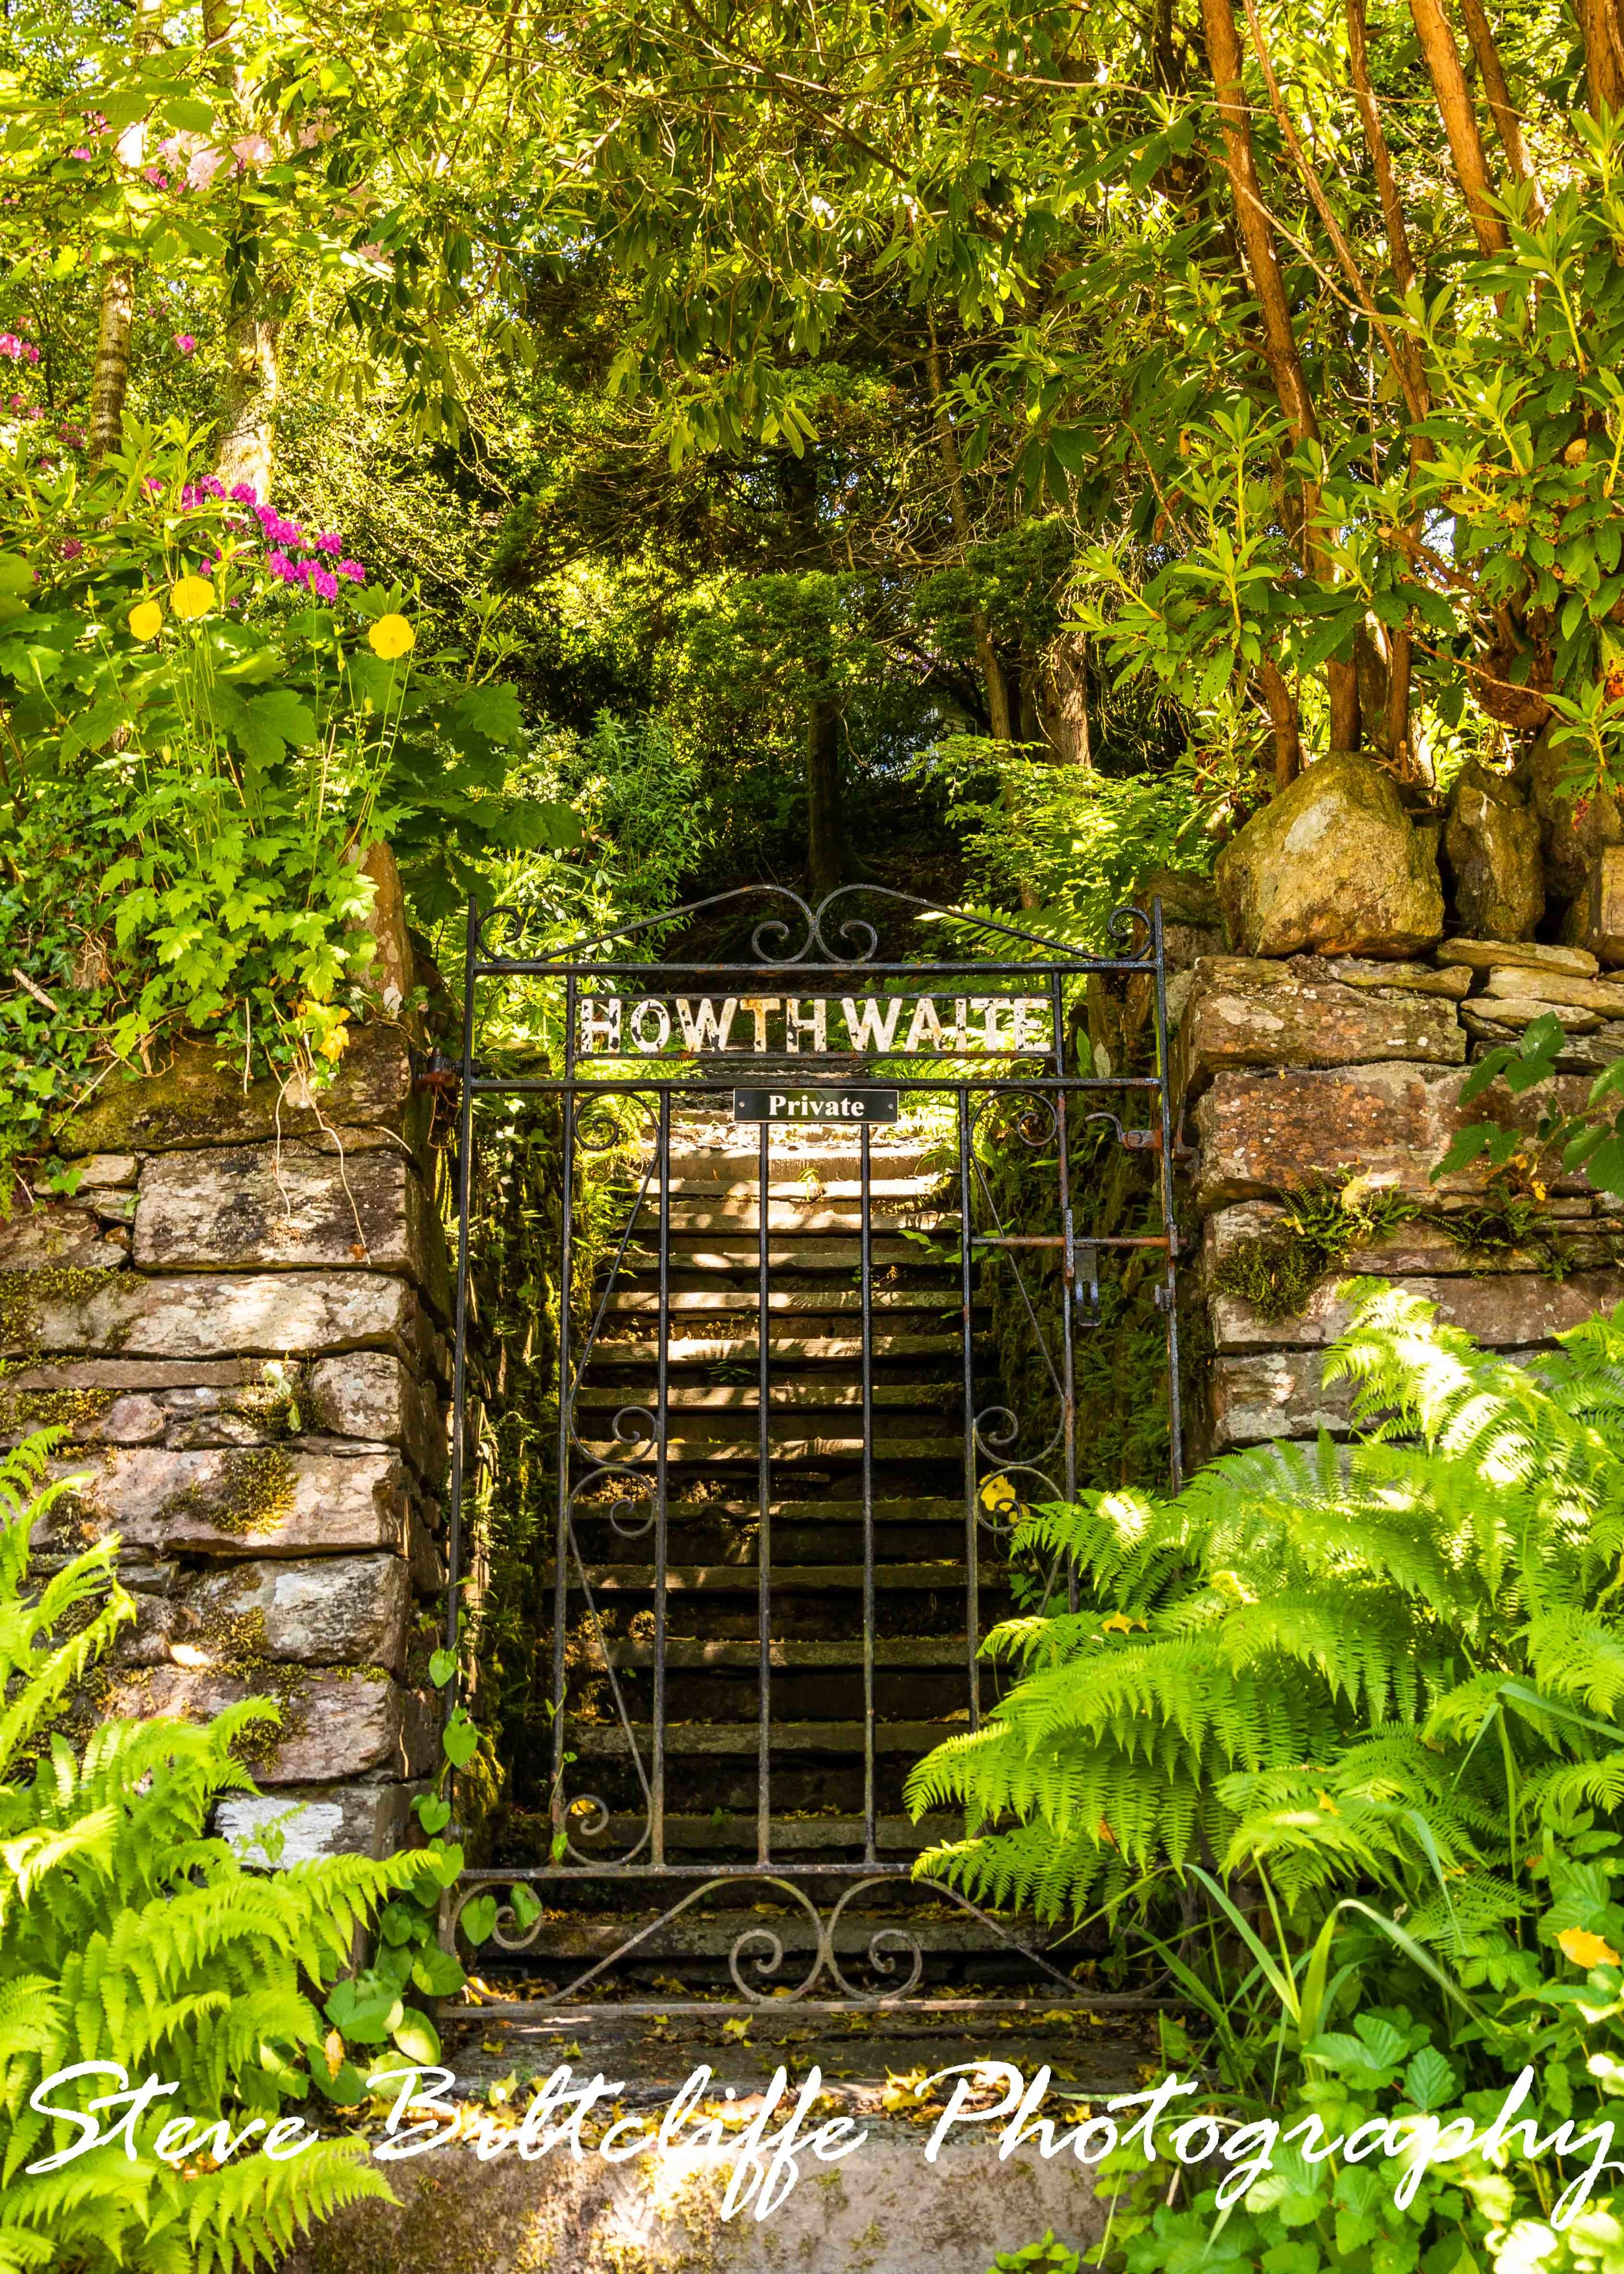 Grasmere - The Howthwaite Gardens 'Keep Out'